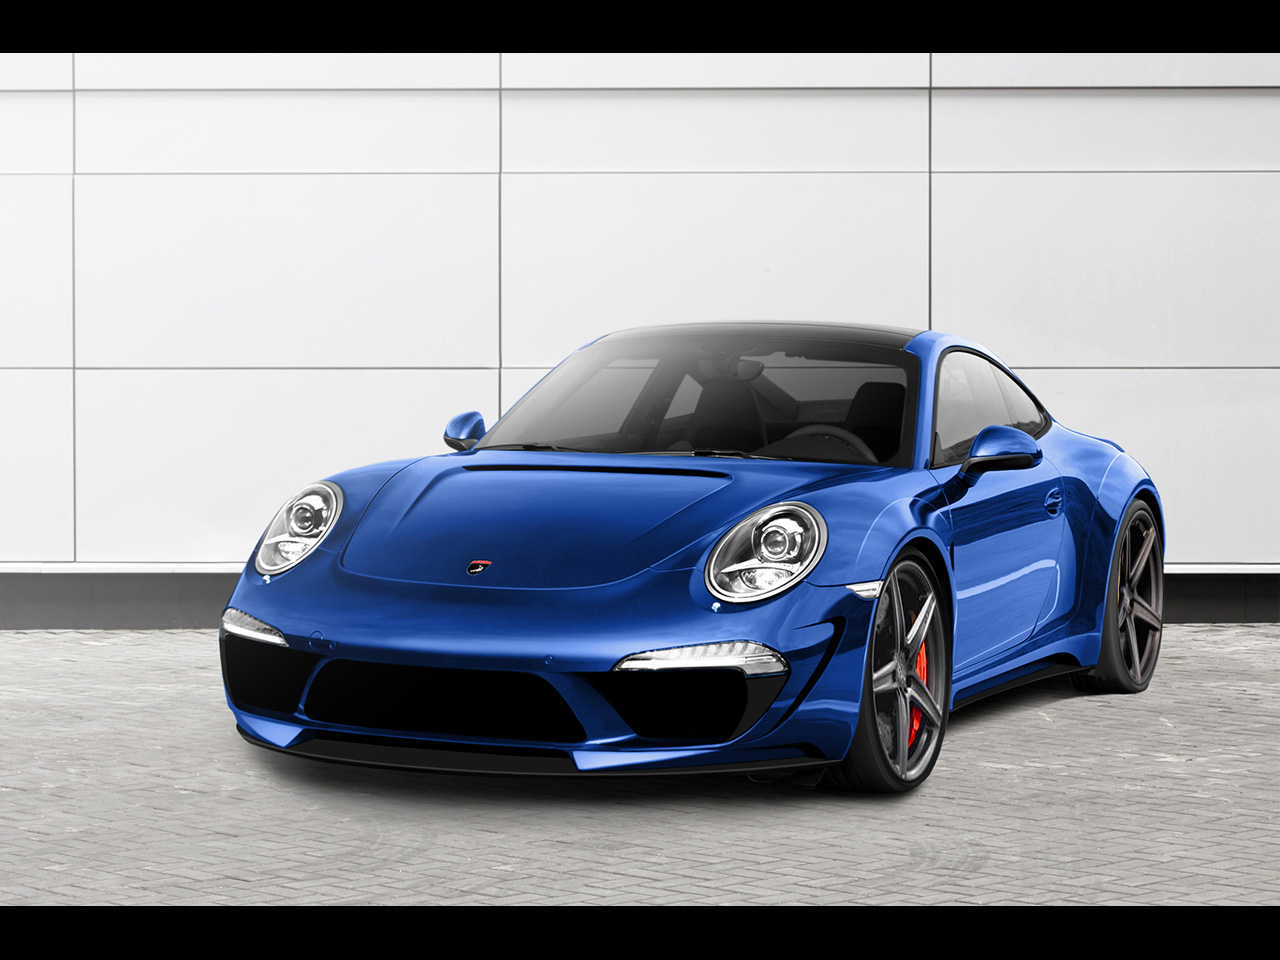 2012 topcar porsche carrera 4 and 4s 991 sketches rendering front angle wallpapers 2012 topcar. Black Bedroom Furniture Sets. Home Design Ideas